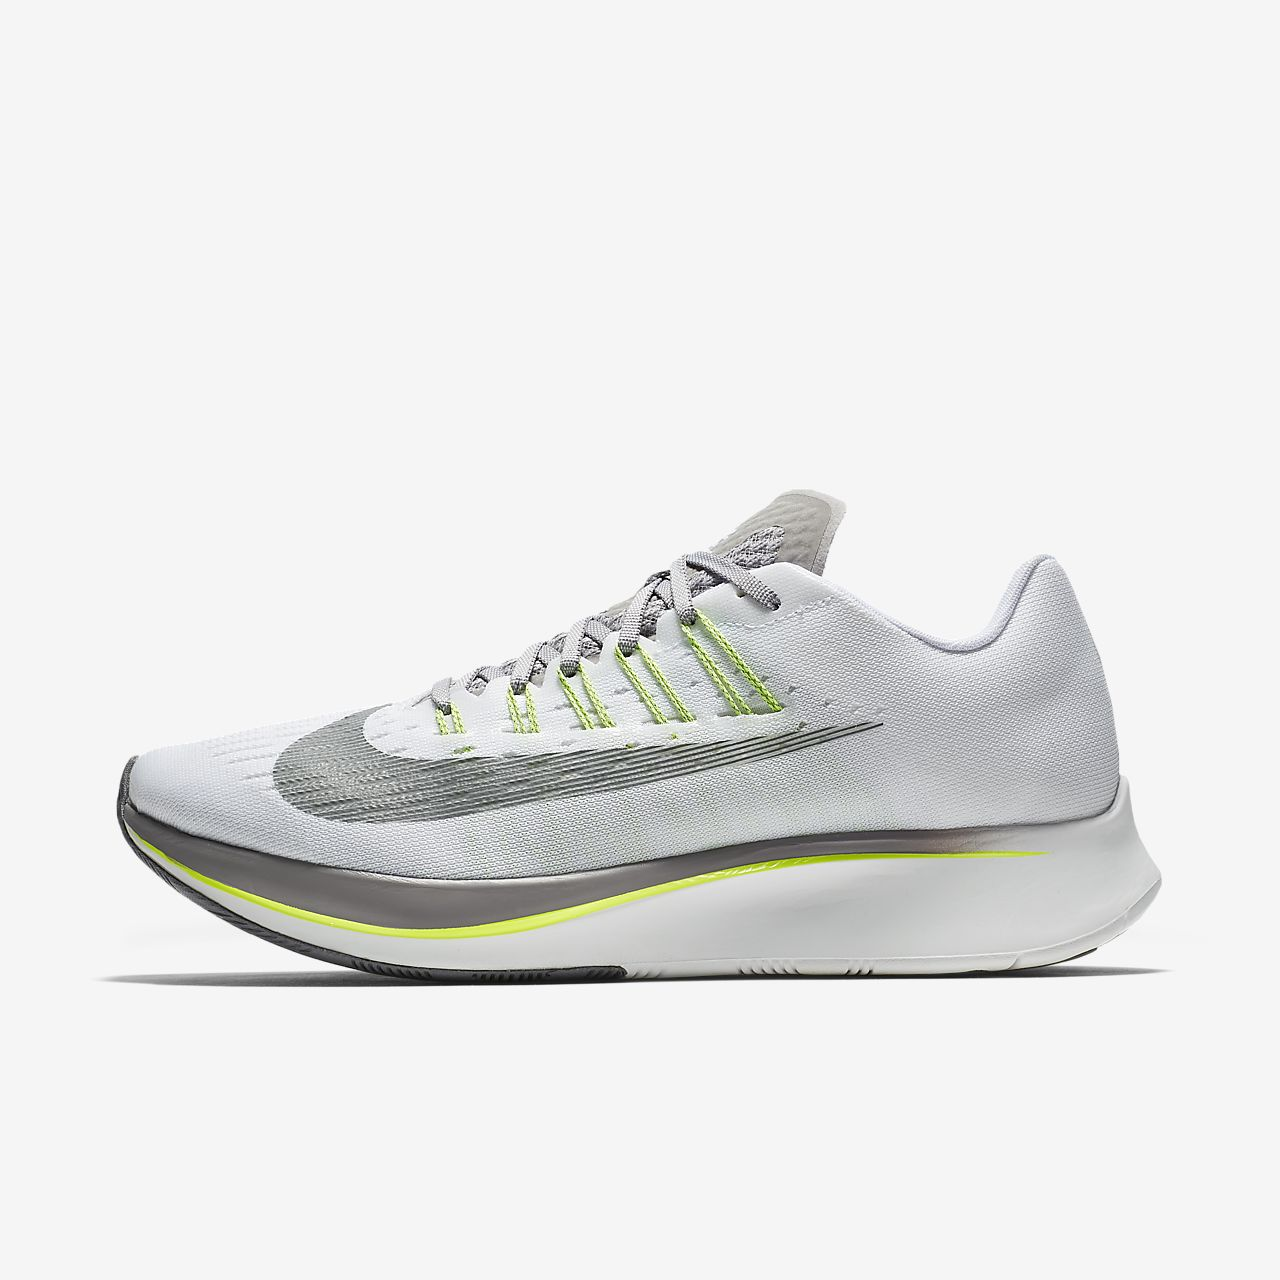 66a86feba Nike Zoom Fly Men s Running Shoe. Nike.com